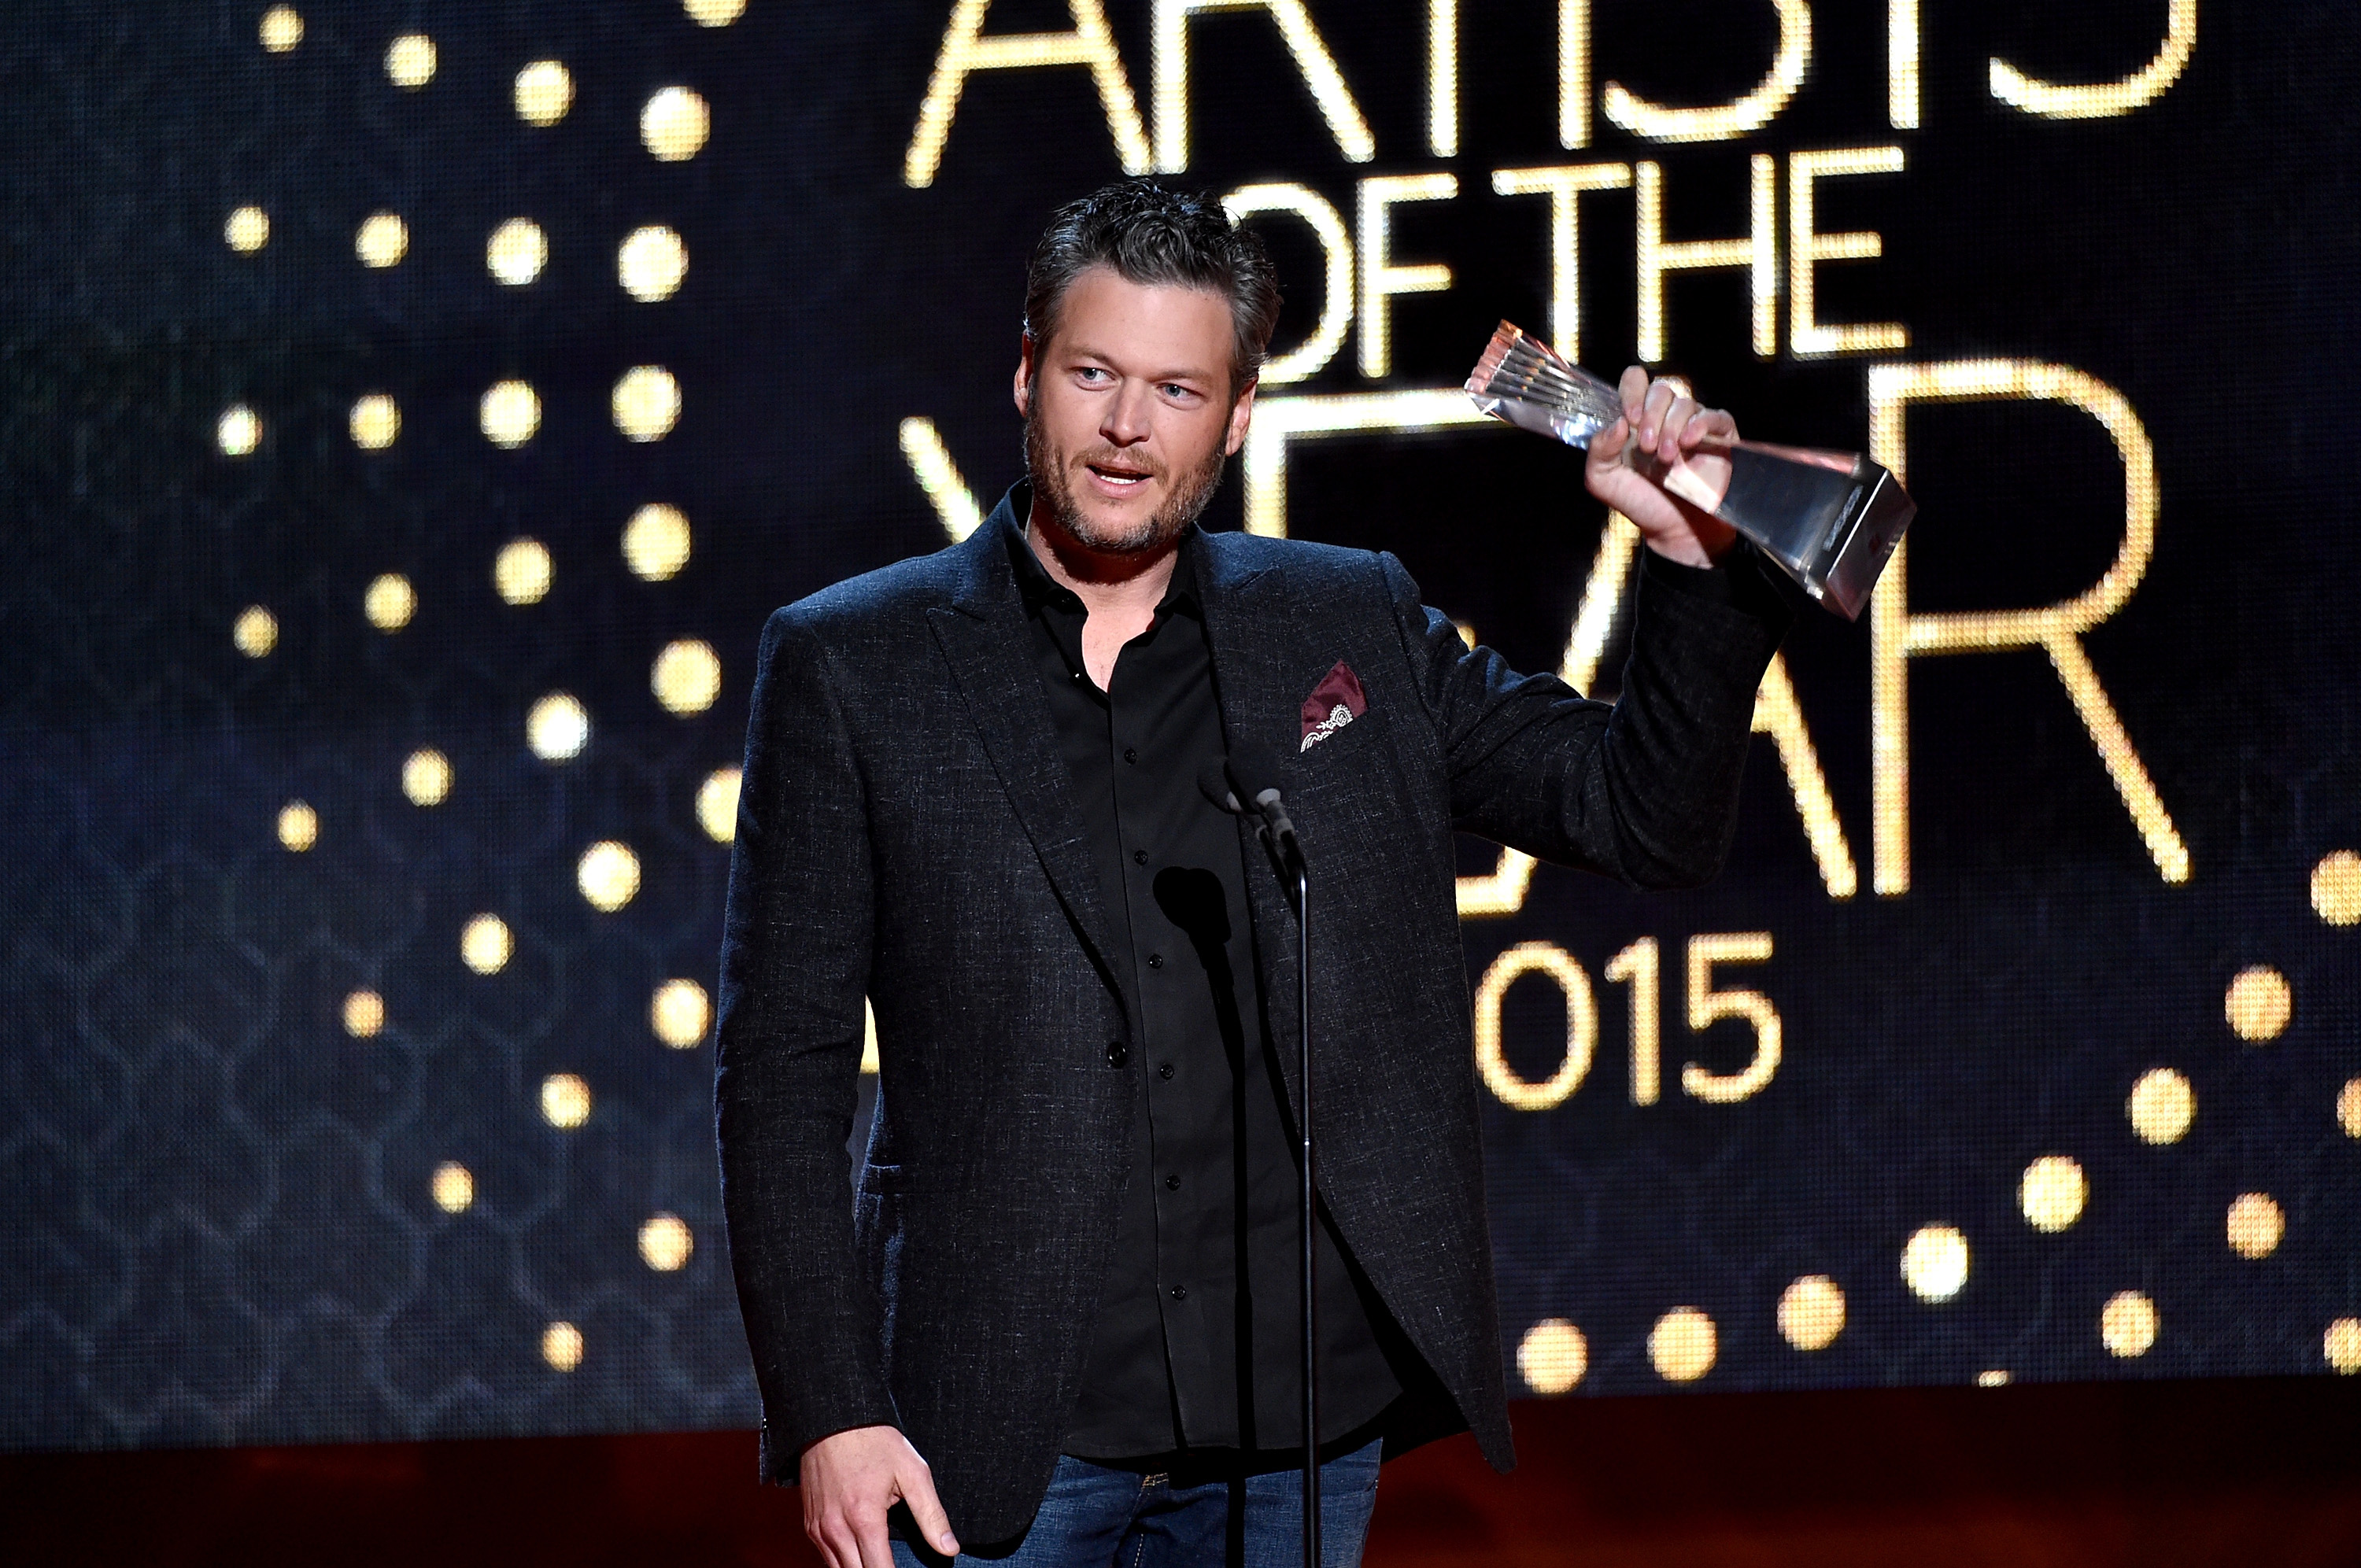 Blake Shelton CMT Artist of the Year